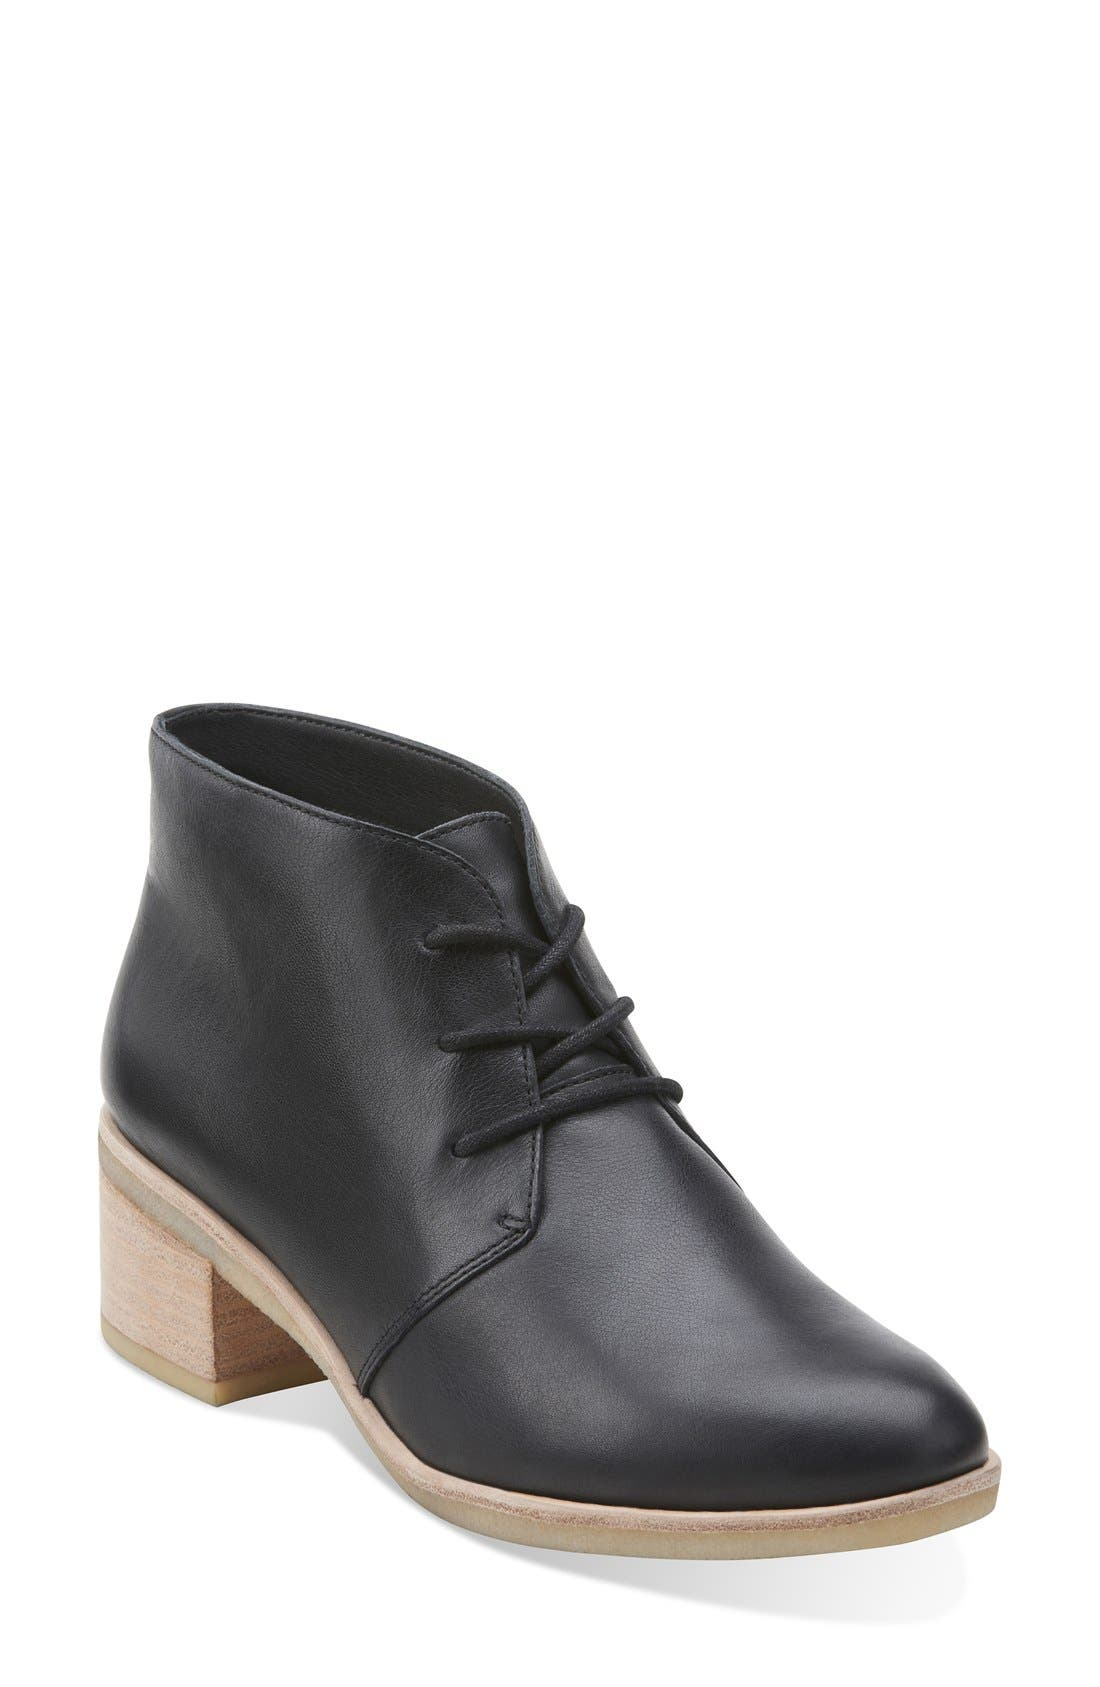 'Phenia Carnaby' Ankle Boot, ...